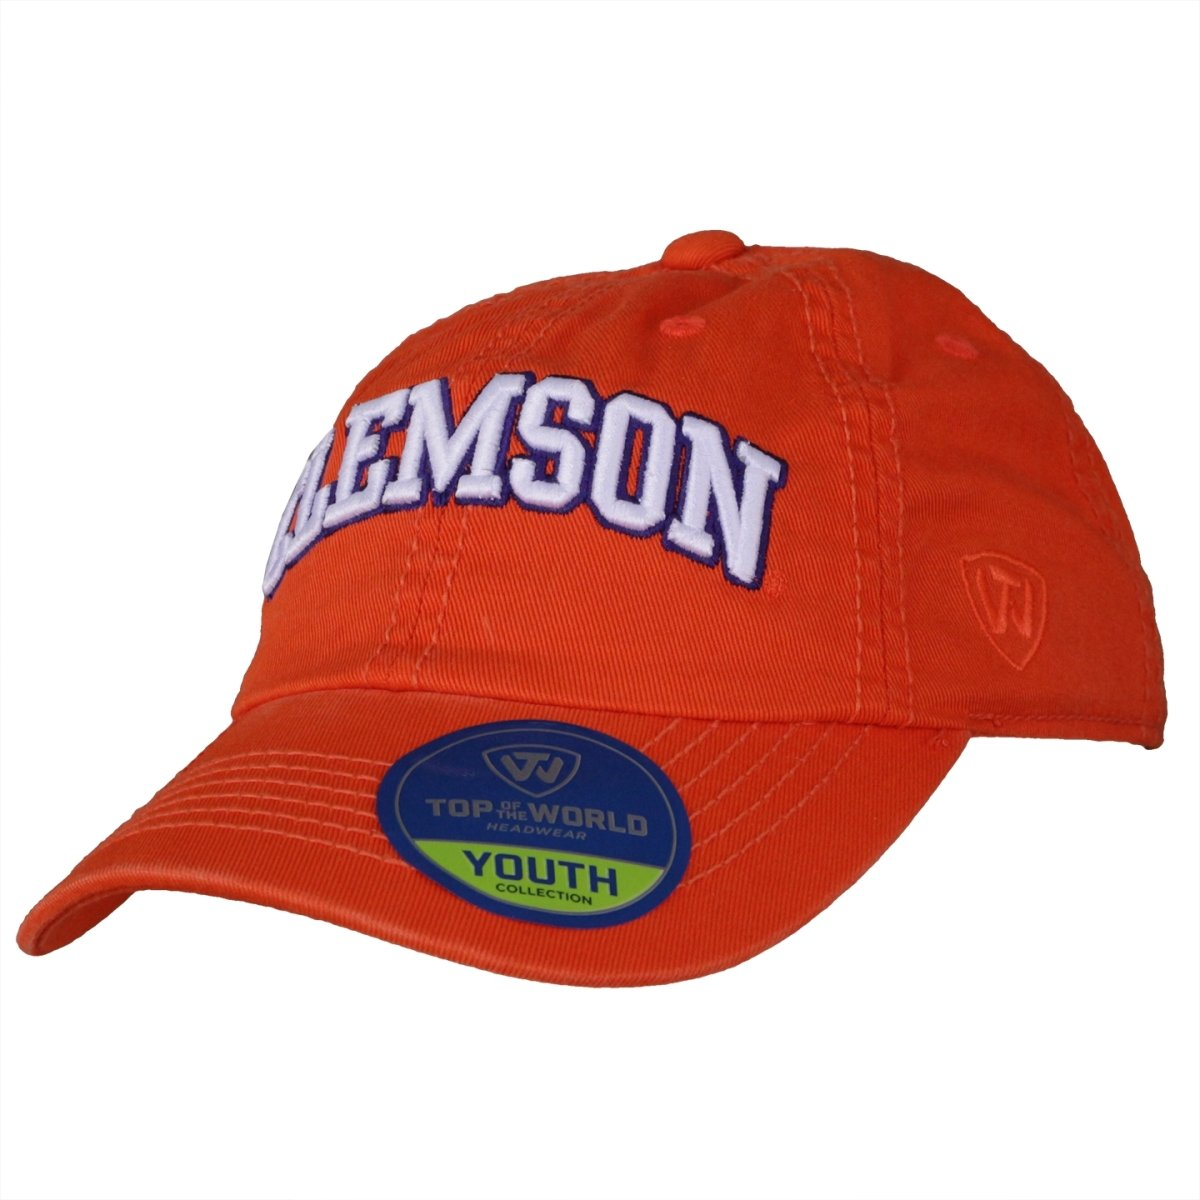 Top of the World Clemson Youth Crew Cap With Clemson Arch - Mr. Knickerbocker